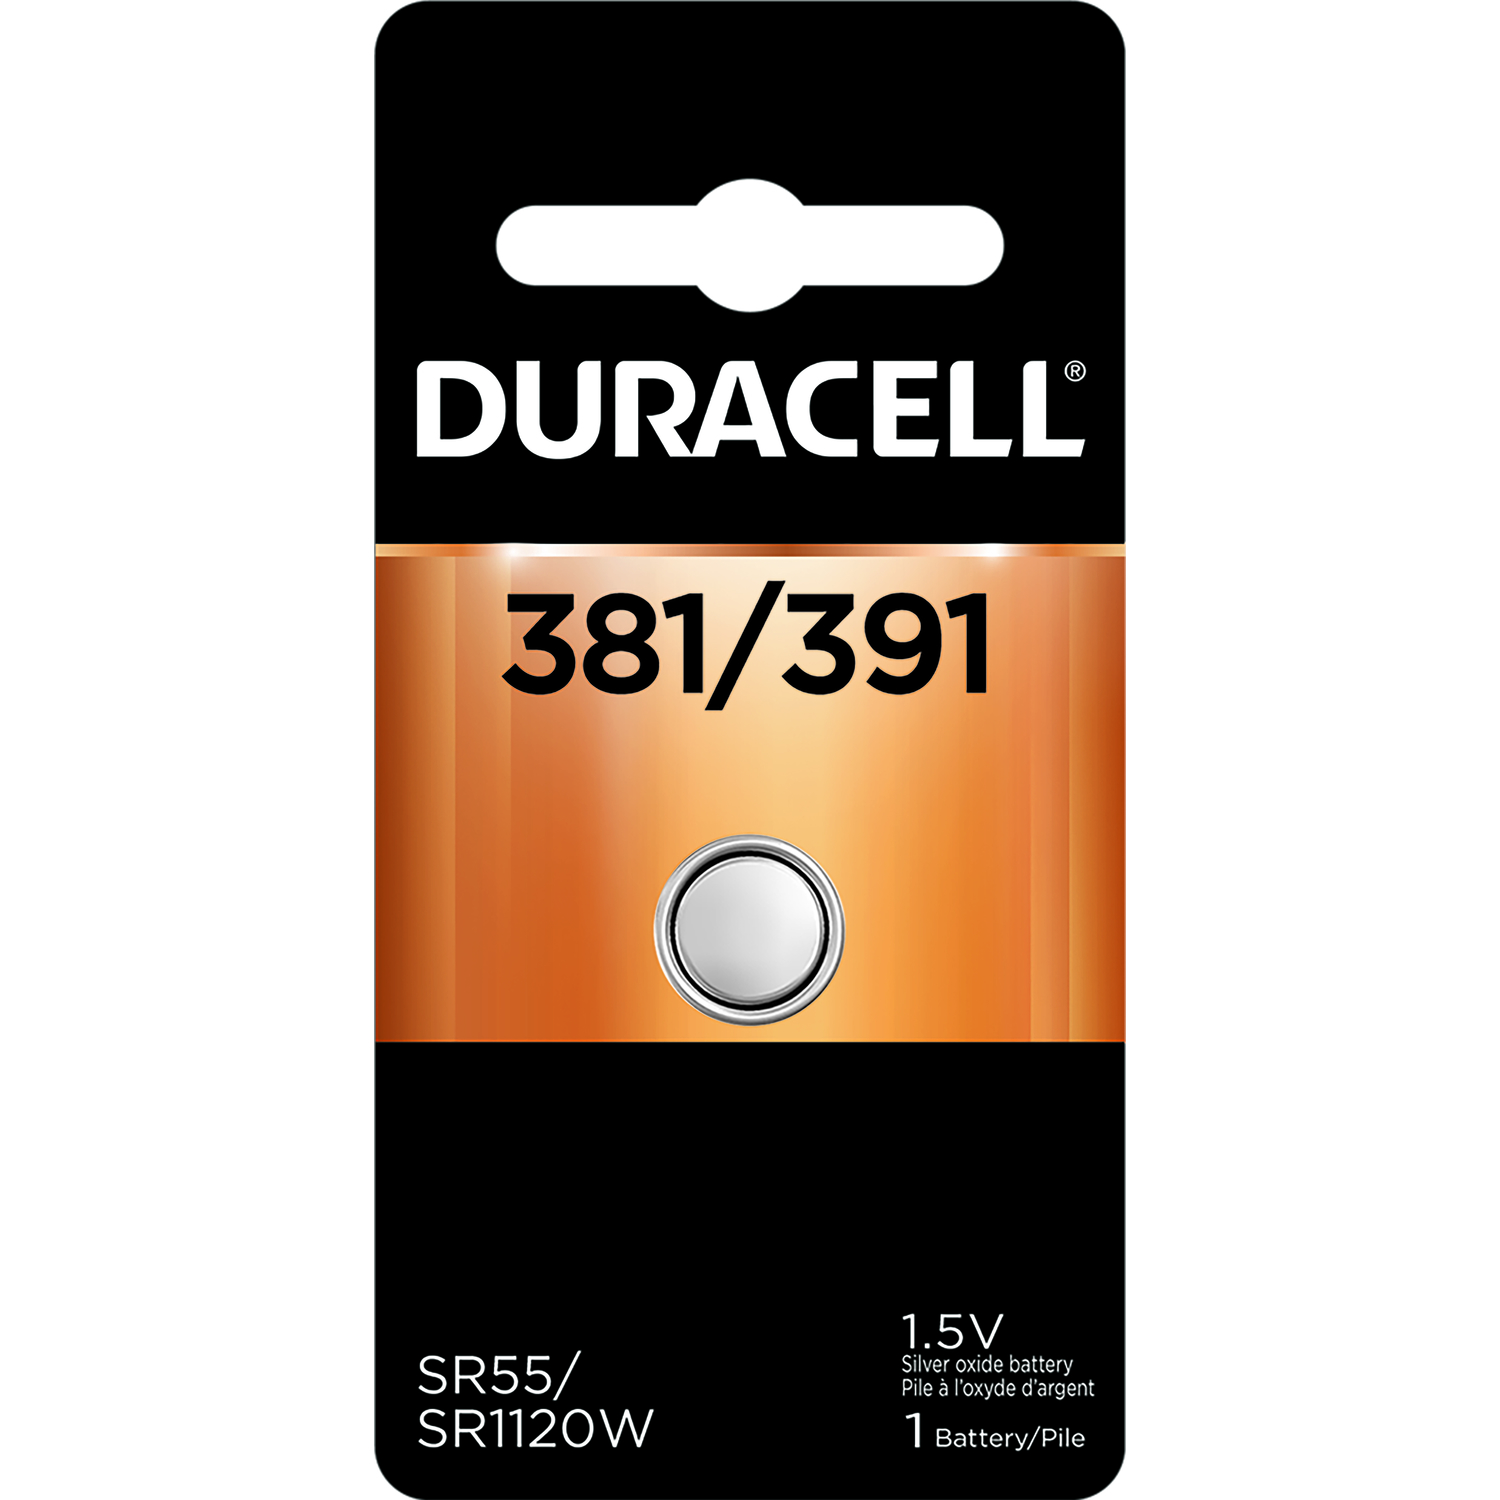 Duracell  Silver Oxide  Electronic/Watch Battery  1 pk 381/391